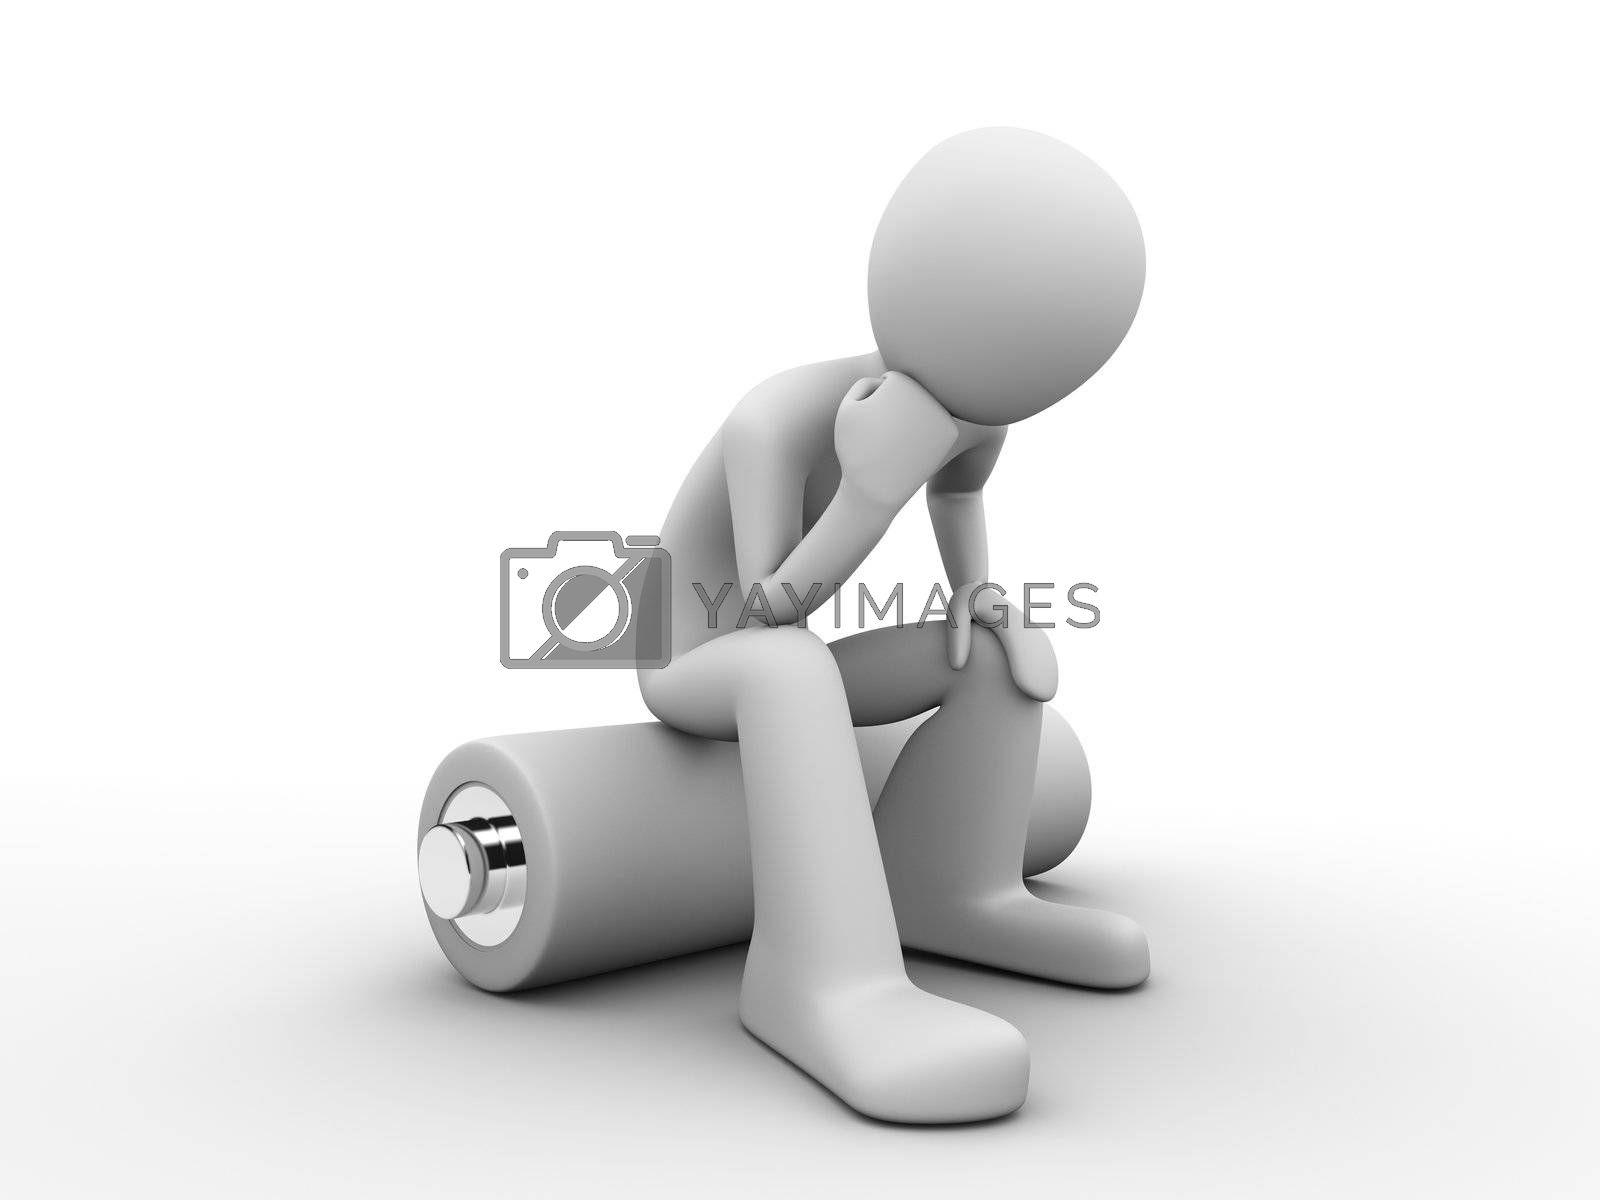 3d rendered copyspaced image with a man sitting on a battery and thinking about saving energy resources